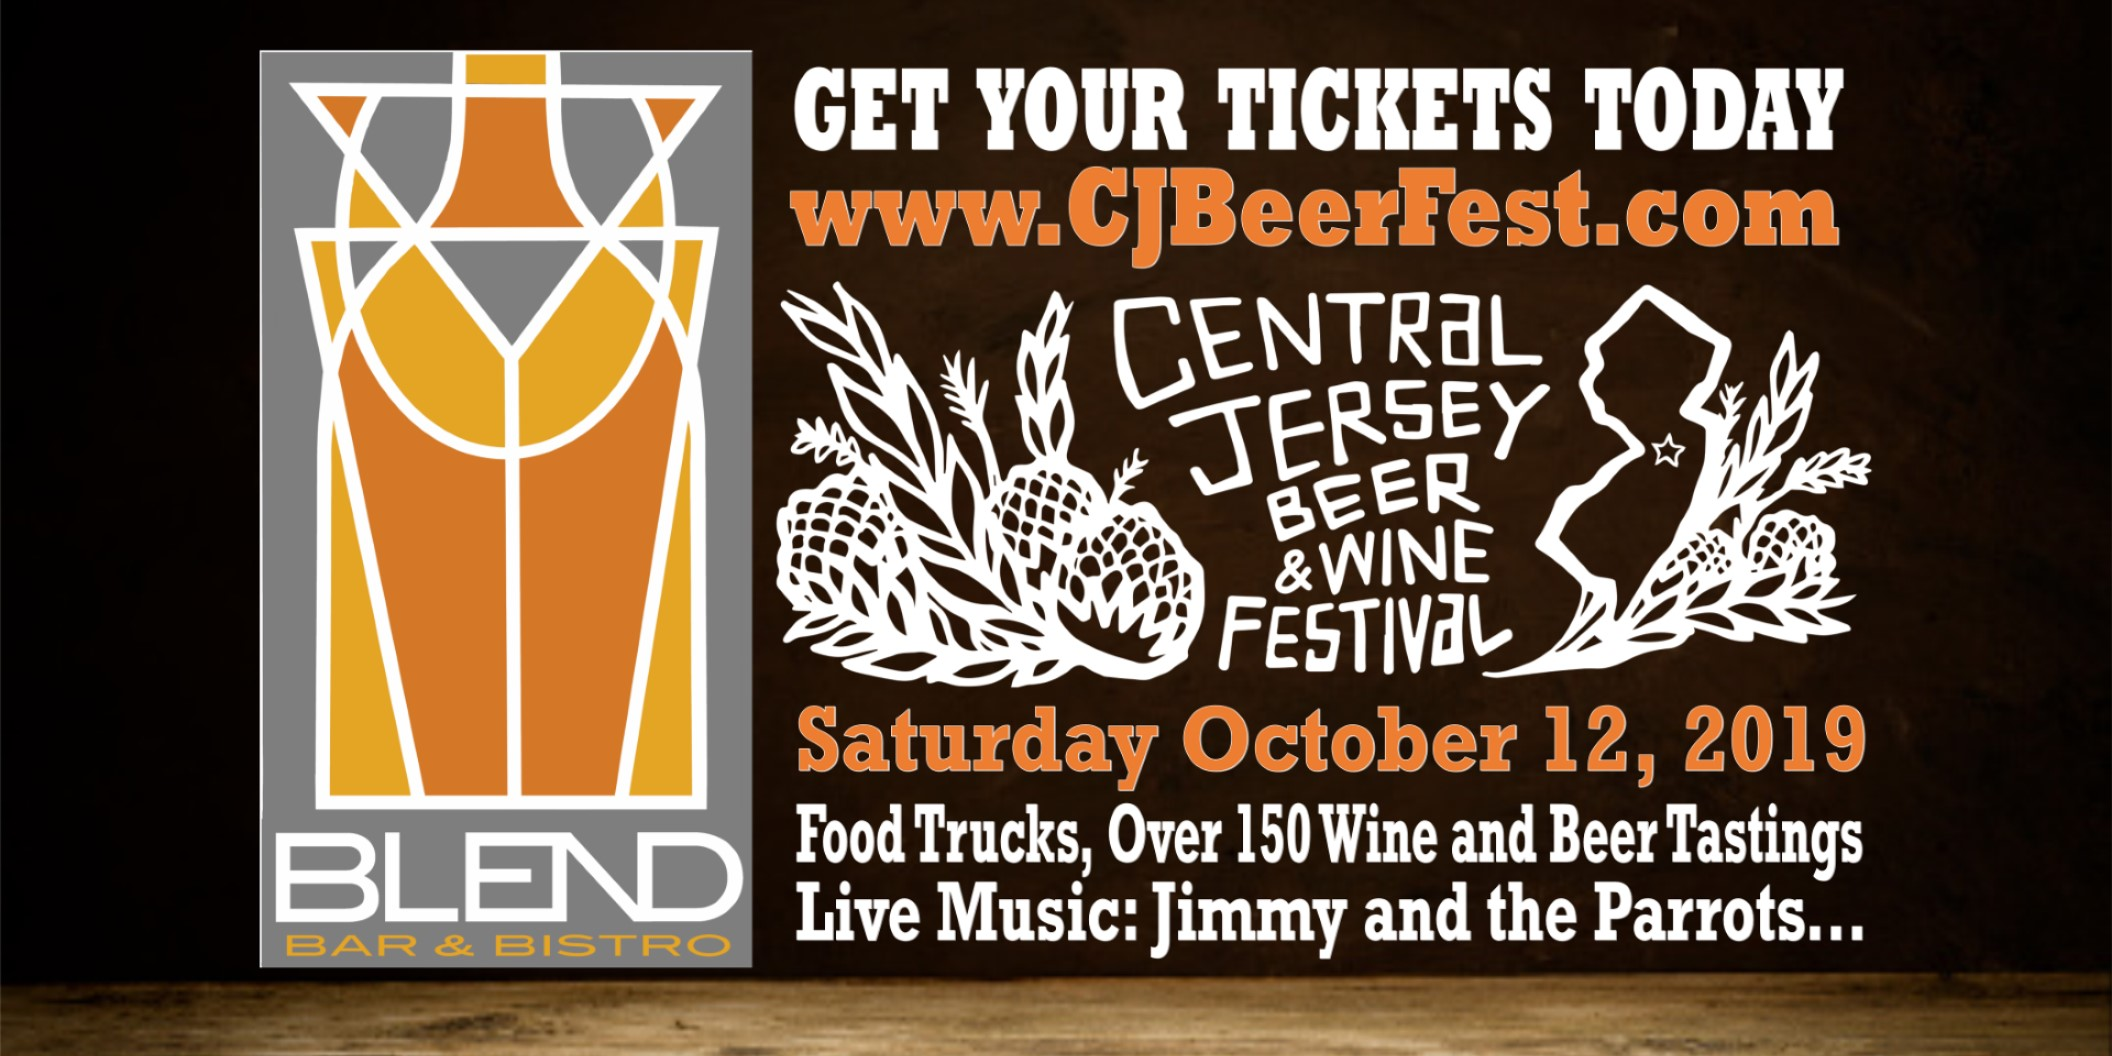 Tickets for Central Jersey Beer Fest #CJBeerFest 2018 in West Windsor Township from BeerFests.com